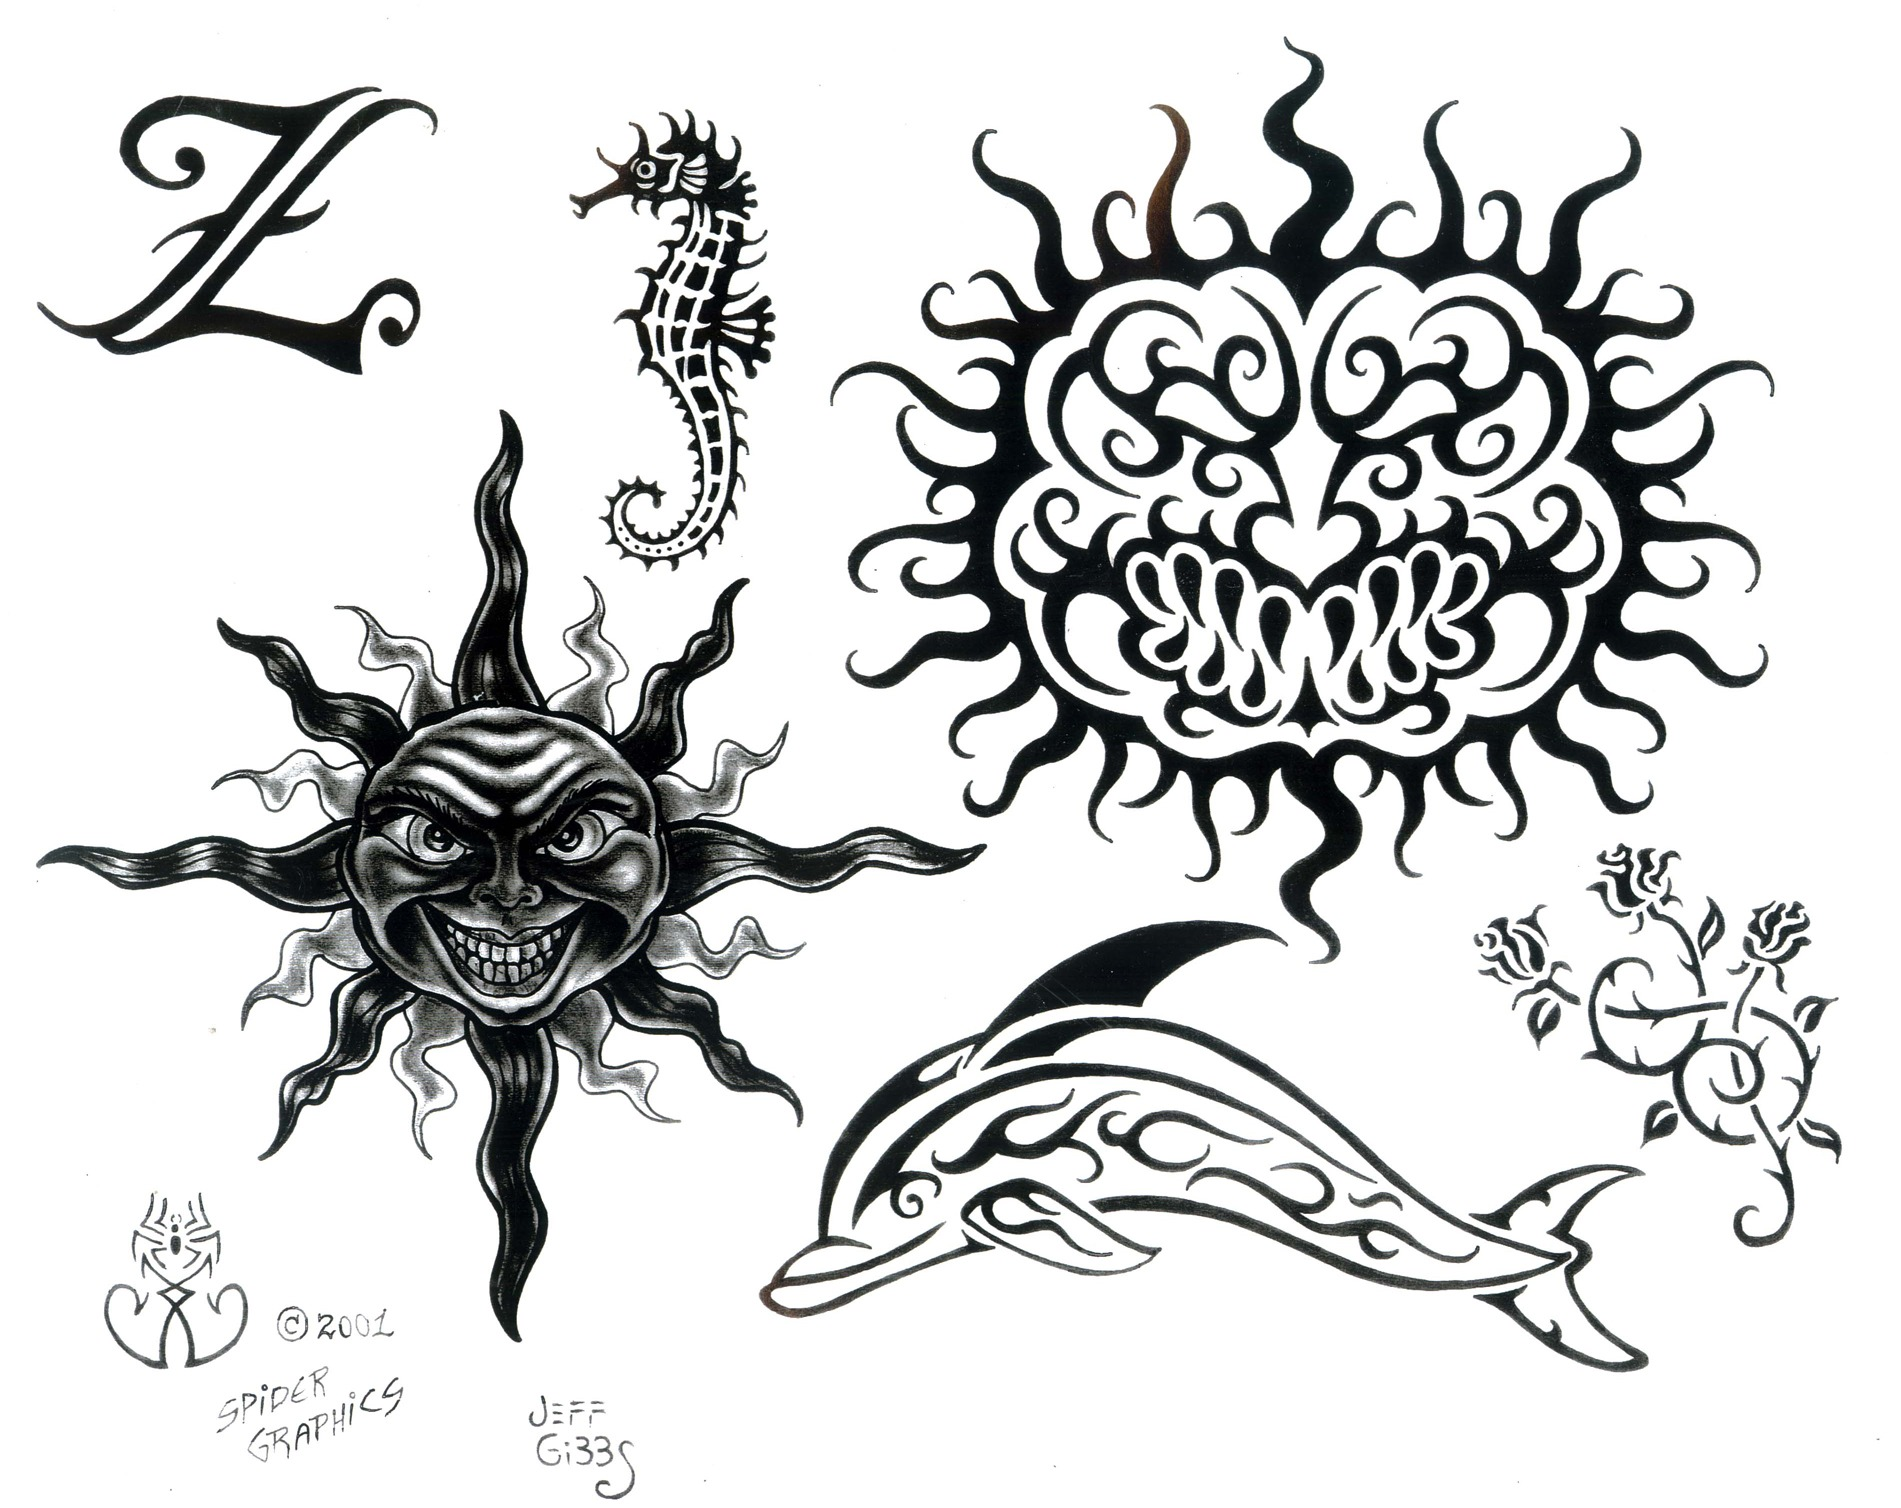 Tattoo designs by Jeff Gibbs.